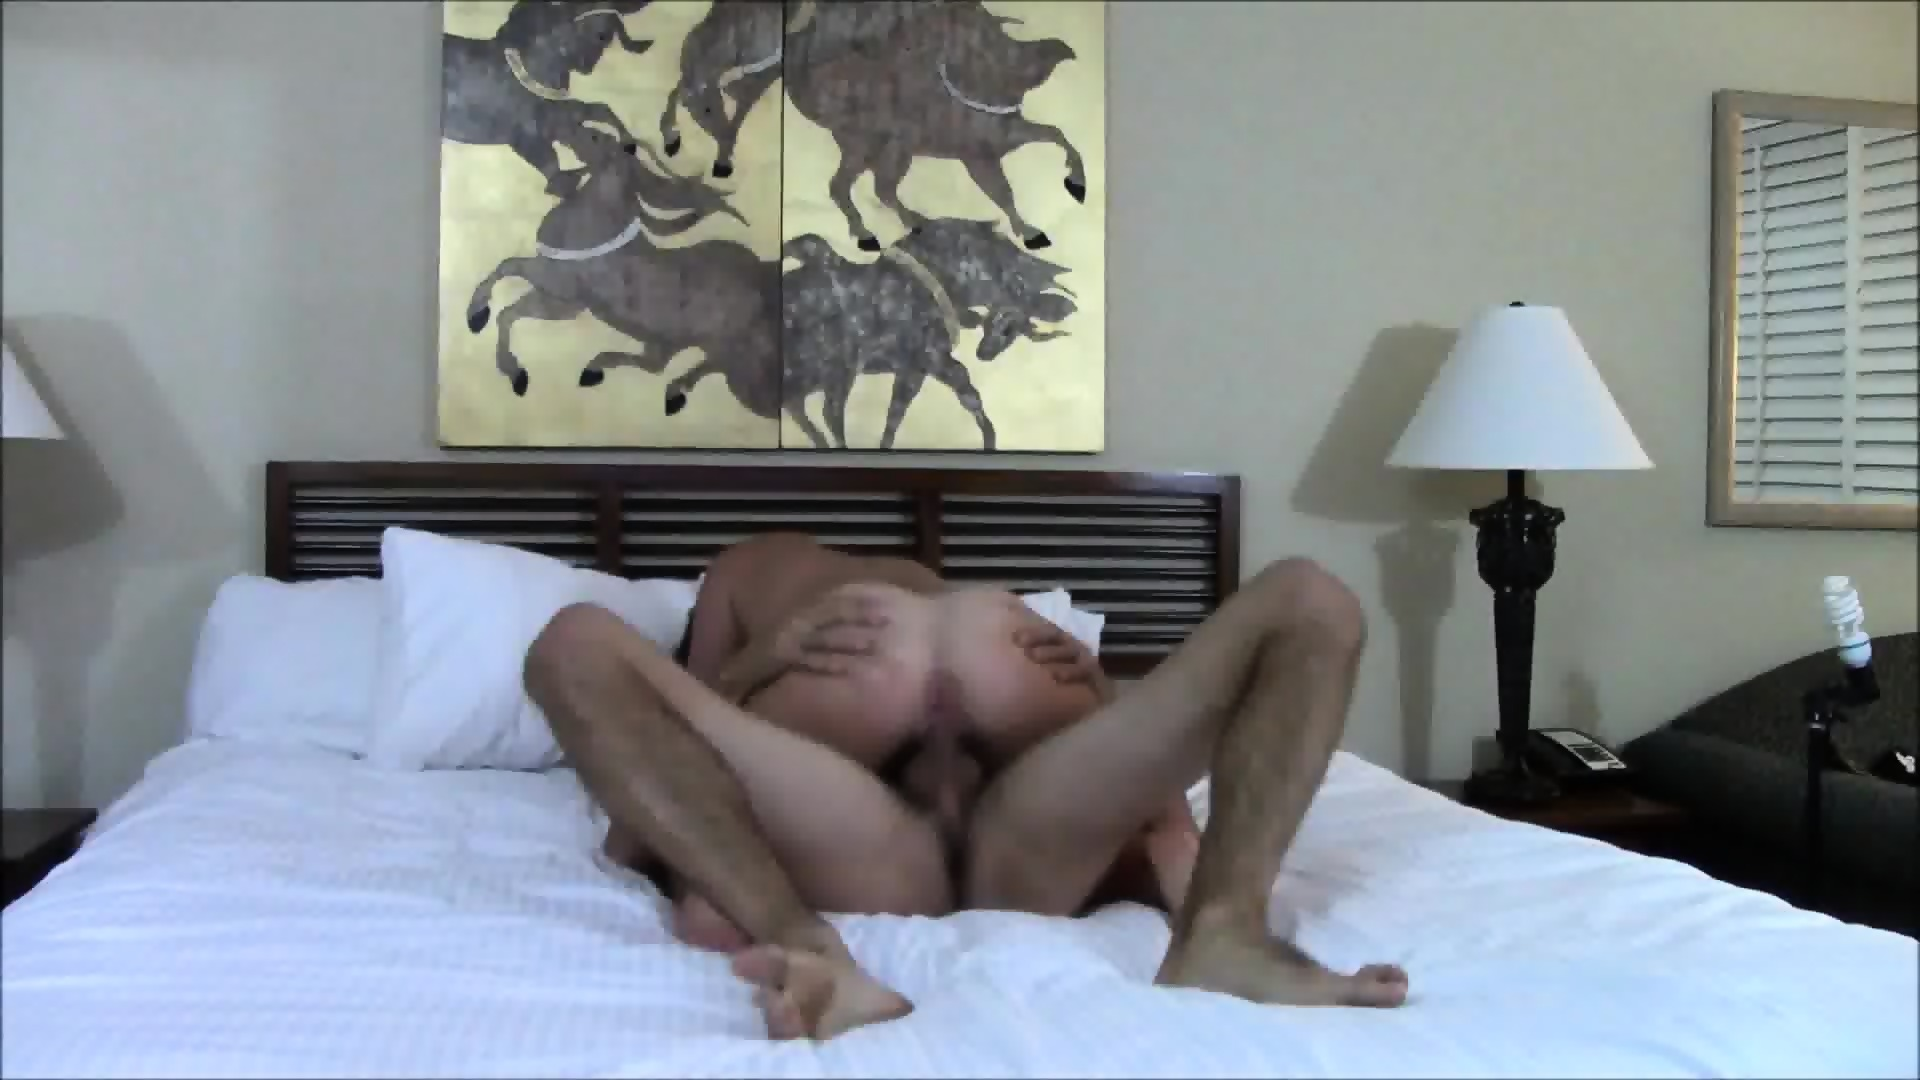 Creampie After Hotel Room Fuck - EPORNER